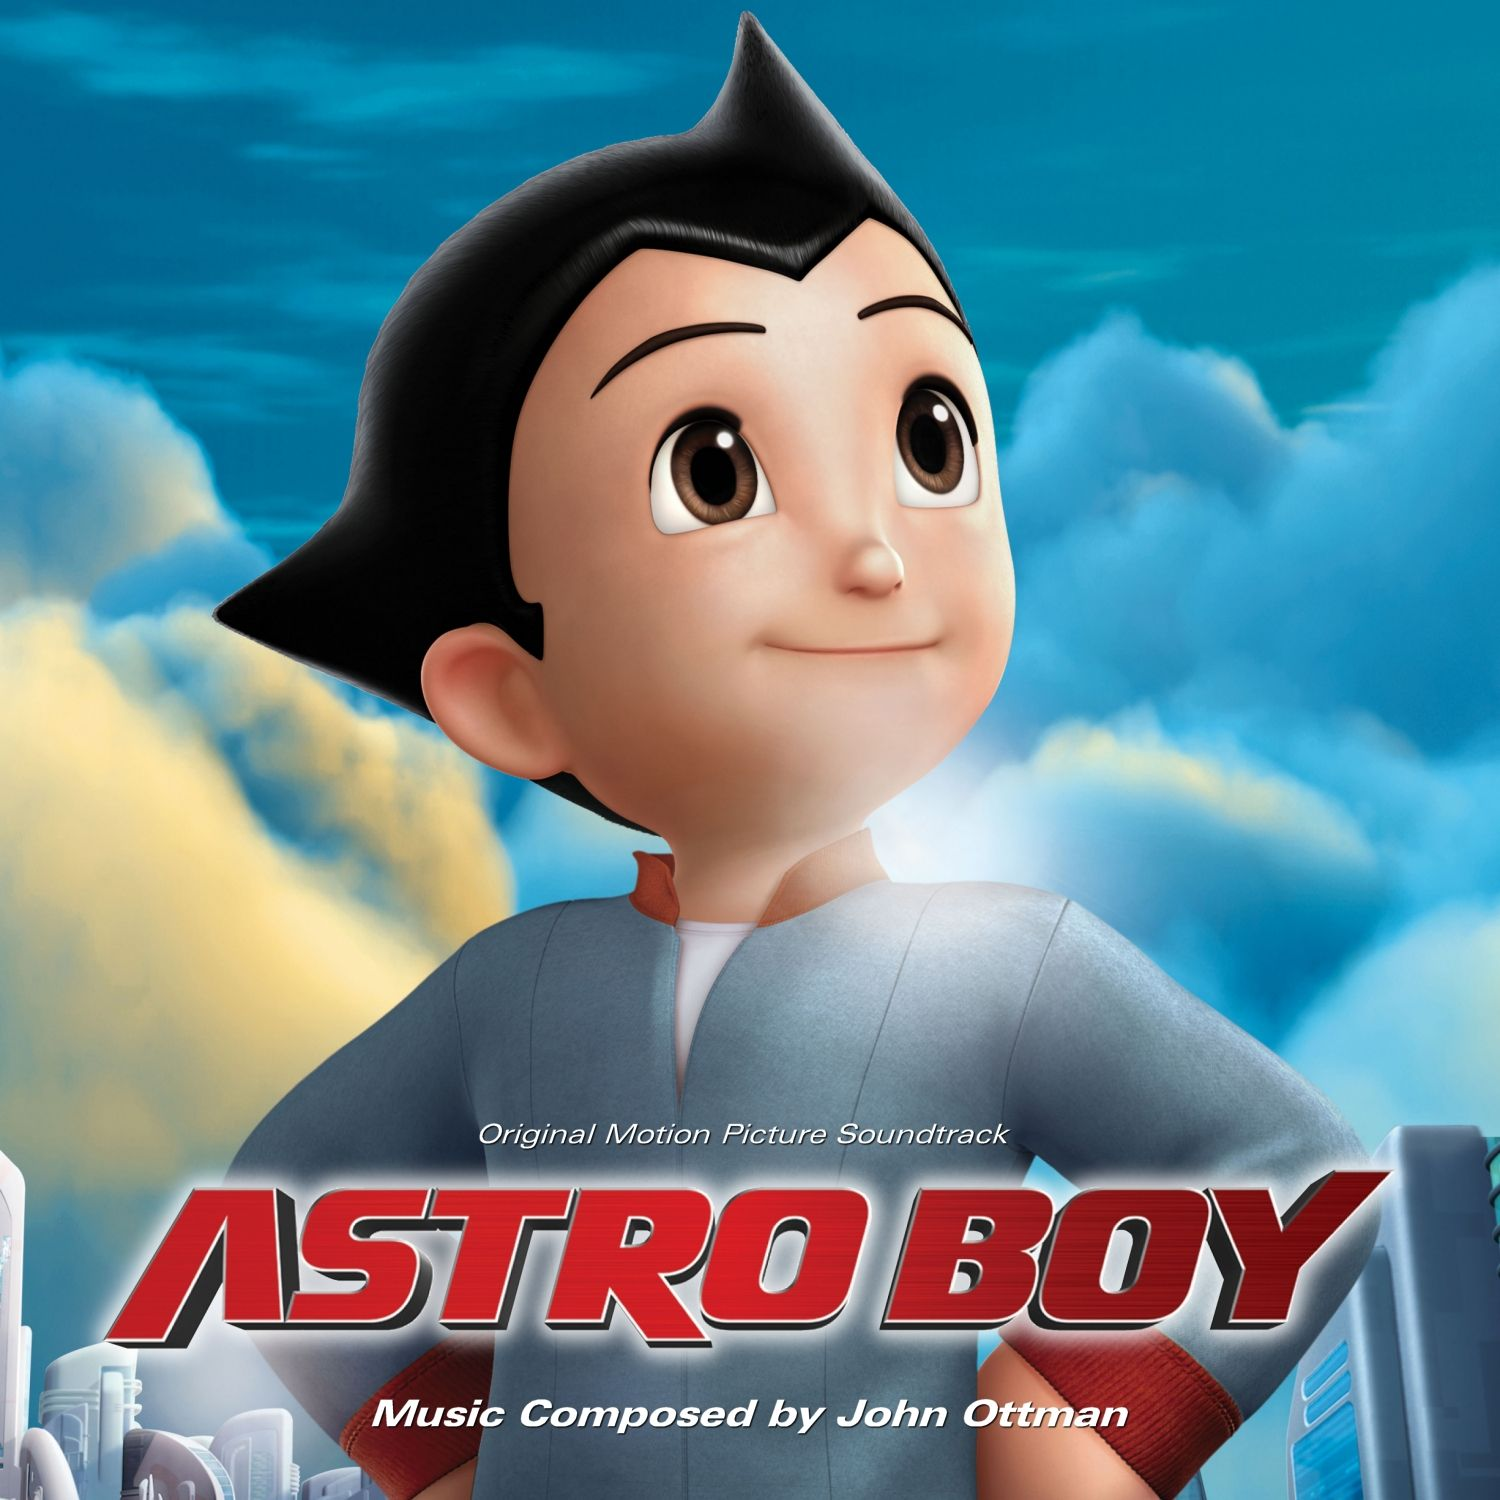 Pin Astro Boy Wallpapers On Pinterest